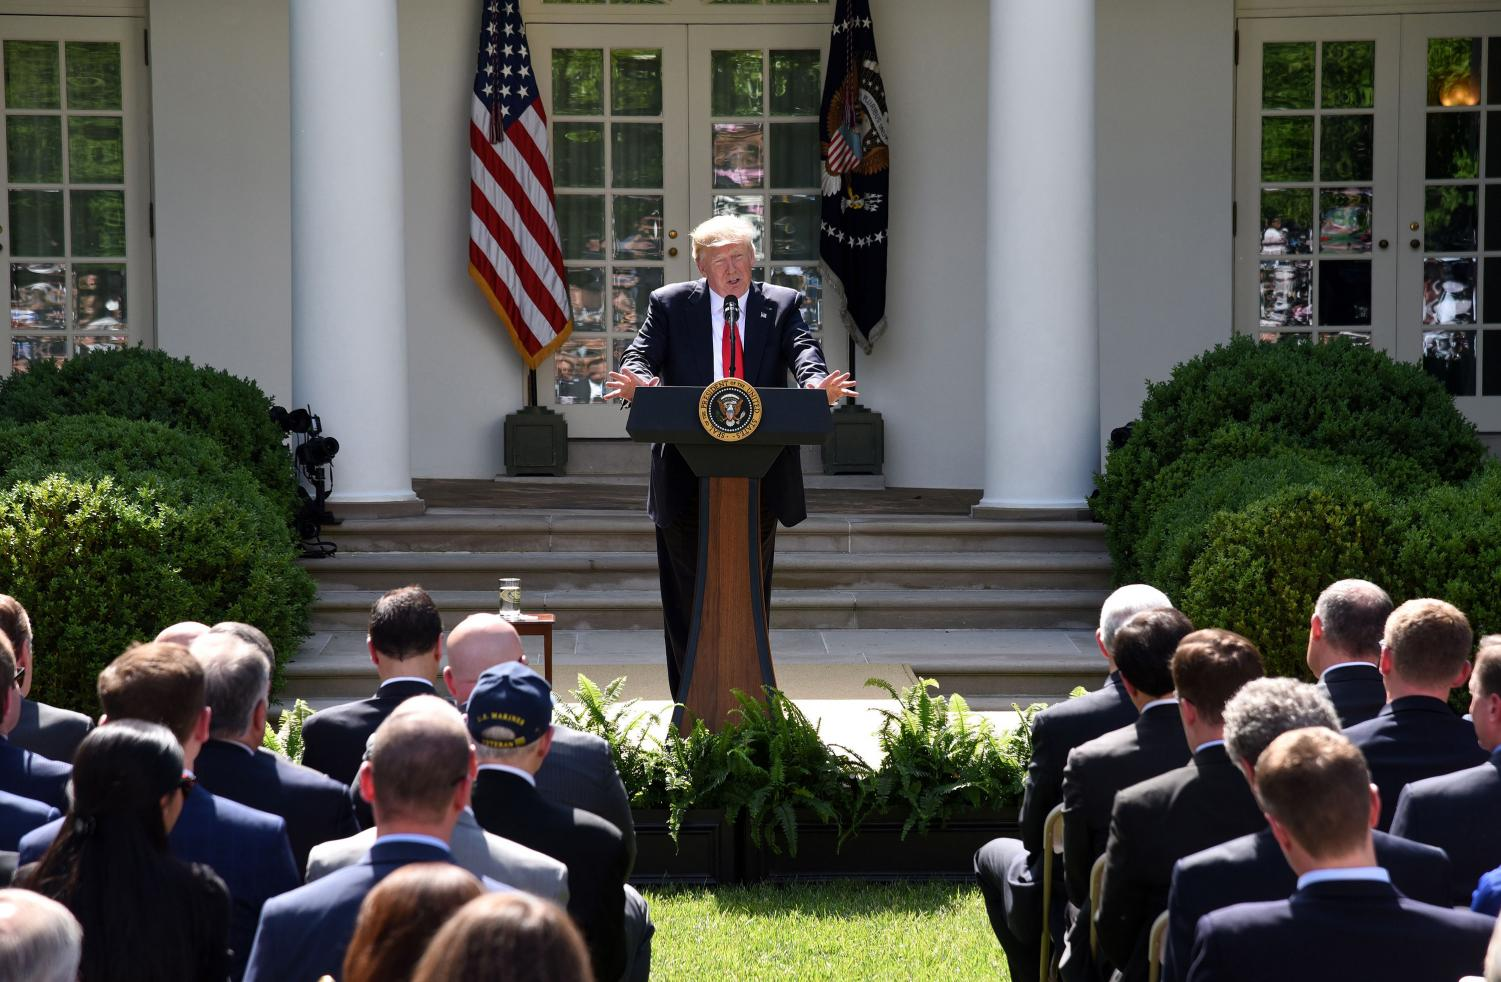 President Donald Trump makes a statement on The Paris Climate Change Accord during an event in the Rose Garden of the White House, on June 1, 2017 in Washington, D.C. (Olivier Douliery/Abaca Press/TNS)